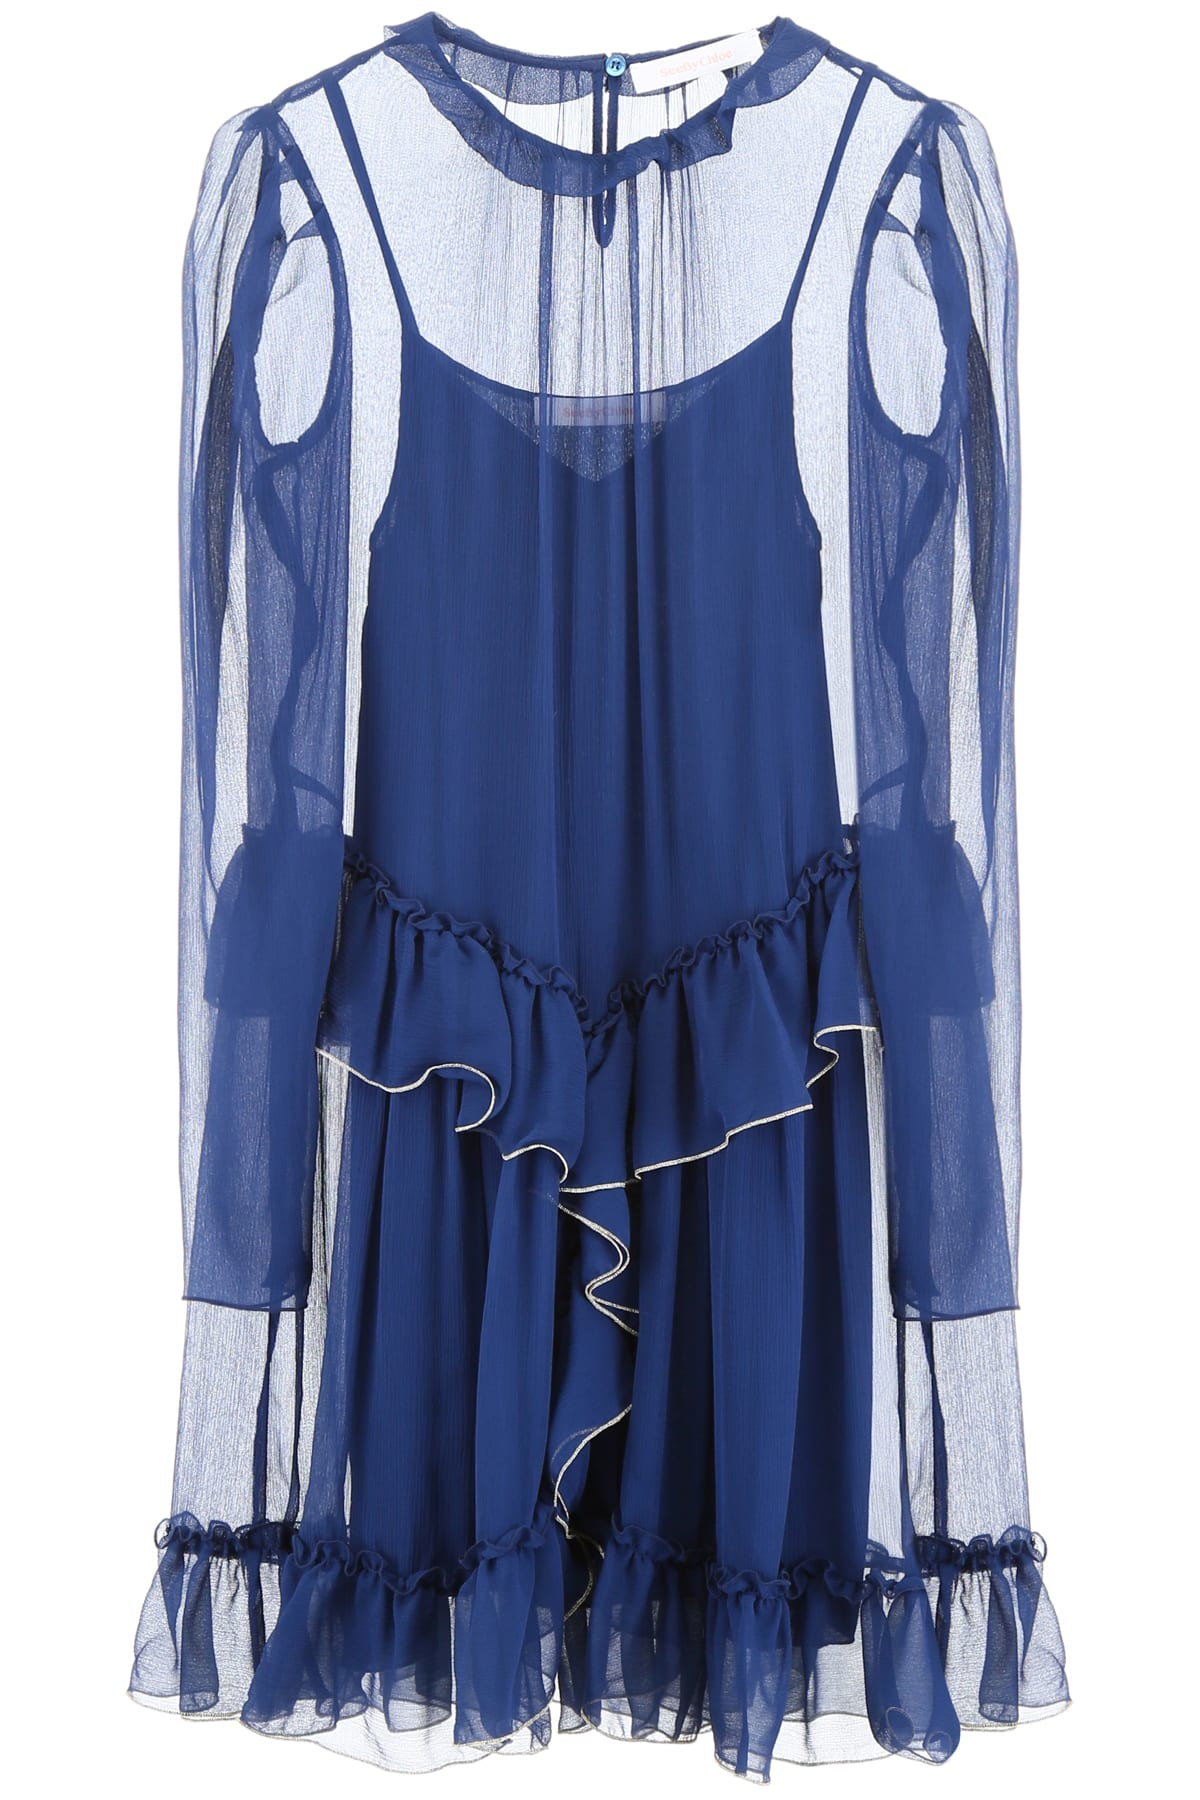 Buy See by Chloé Ruffled Dress online, shop See by Chloé with free shipping